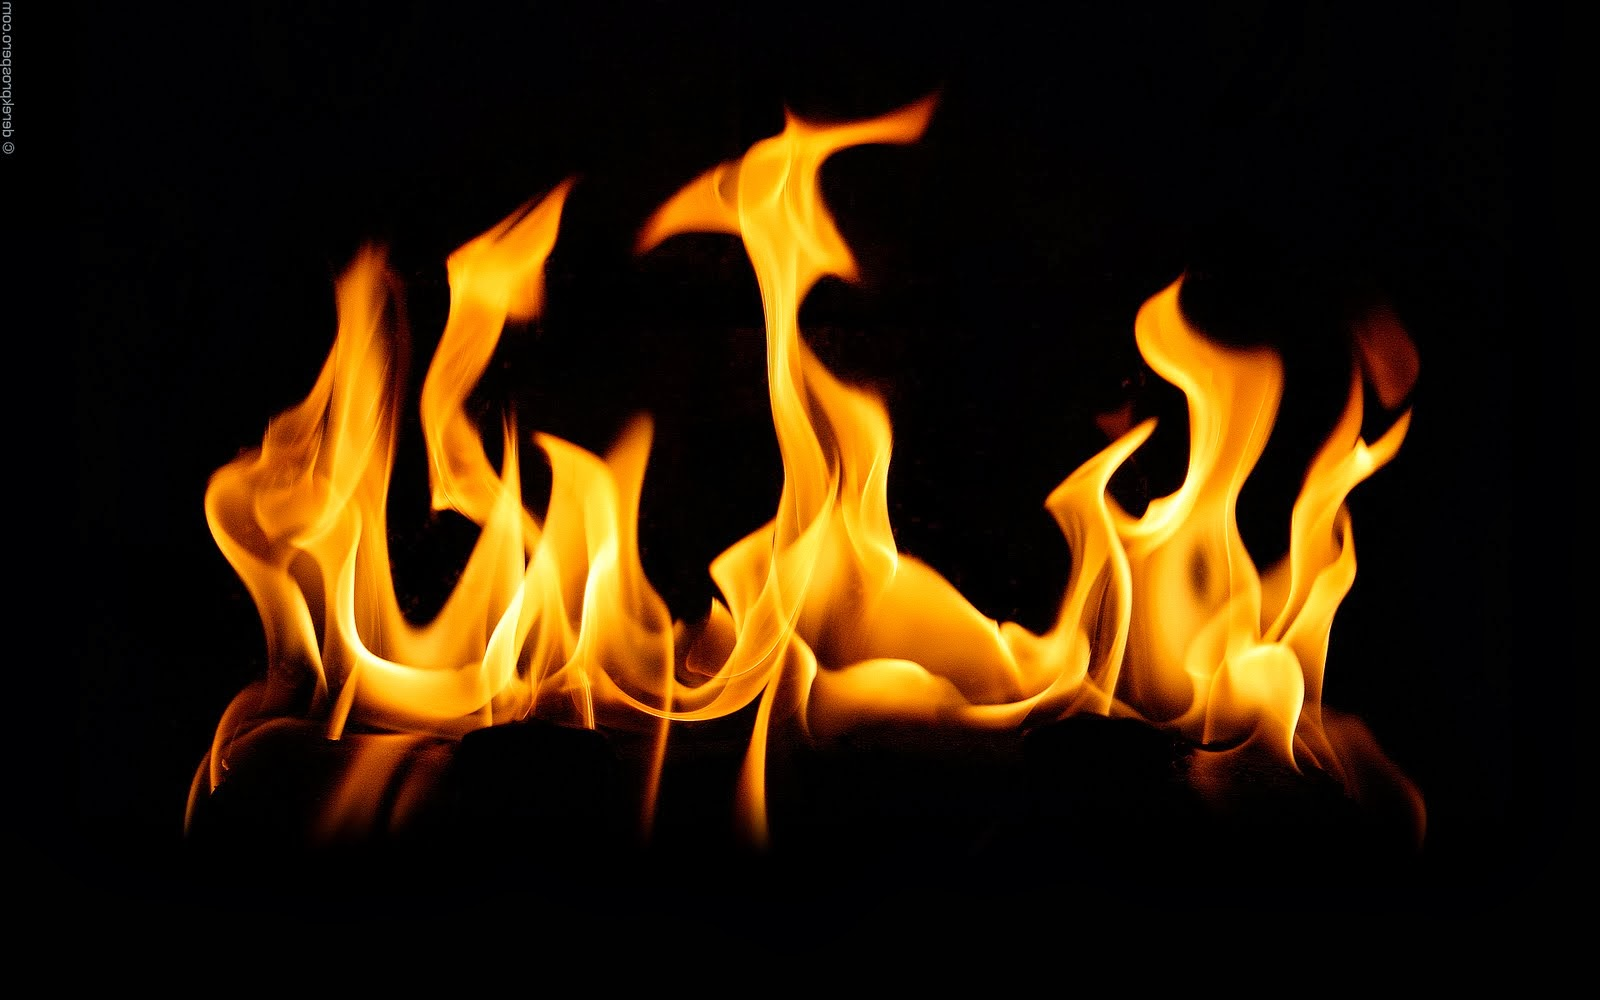 BLACK AND RED FIRE HD WALLPAPERS | FREE HD WALLPAPERS